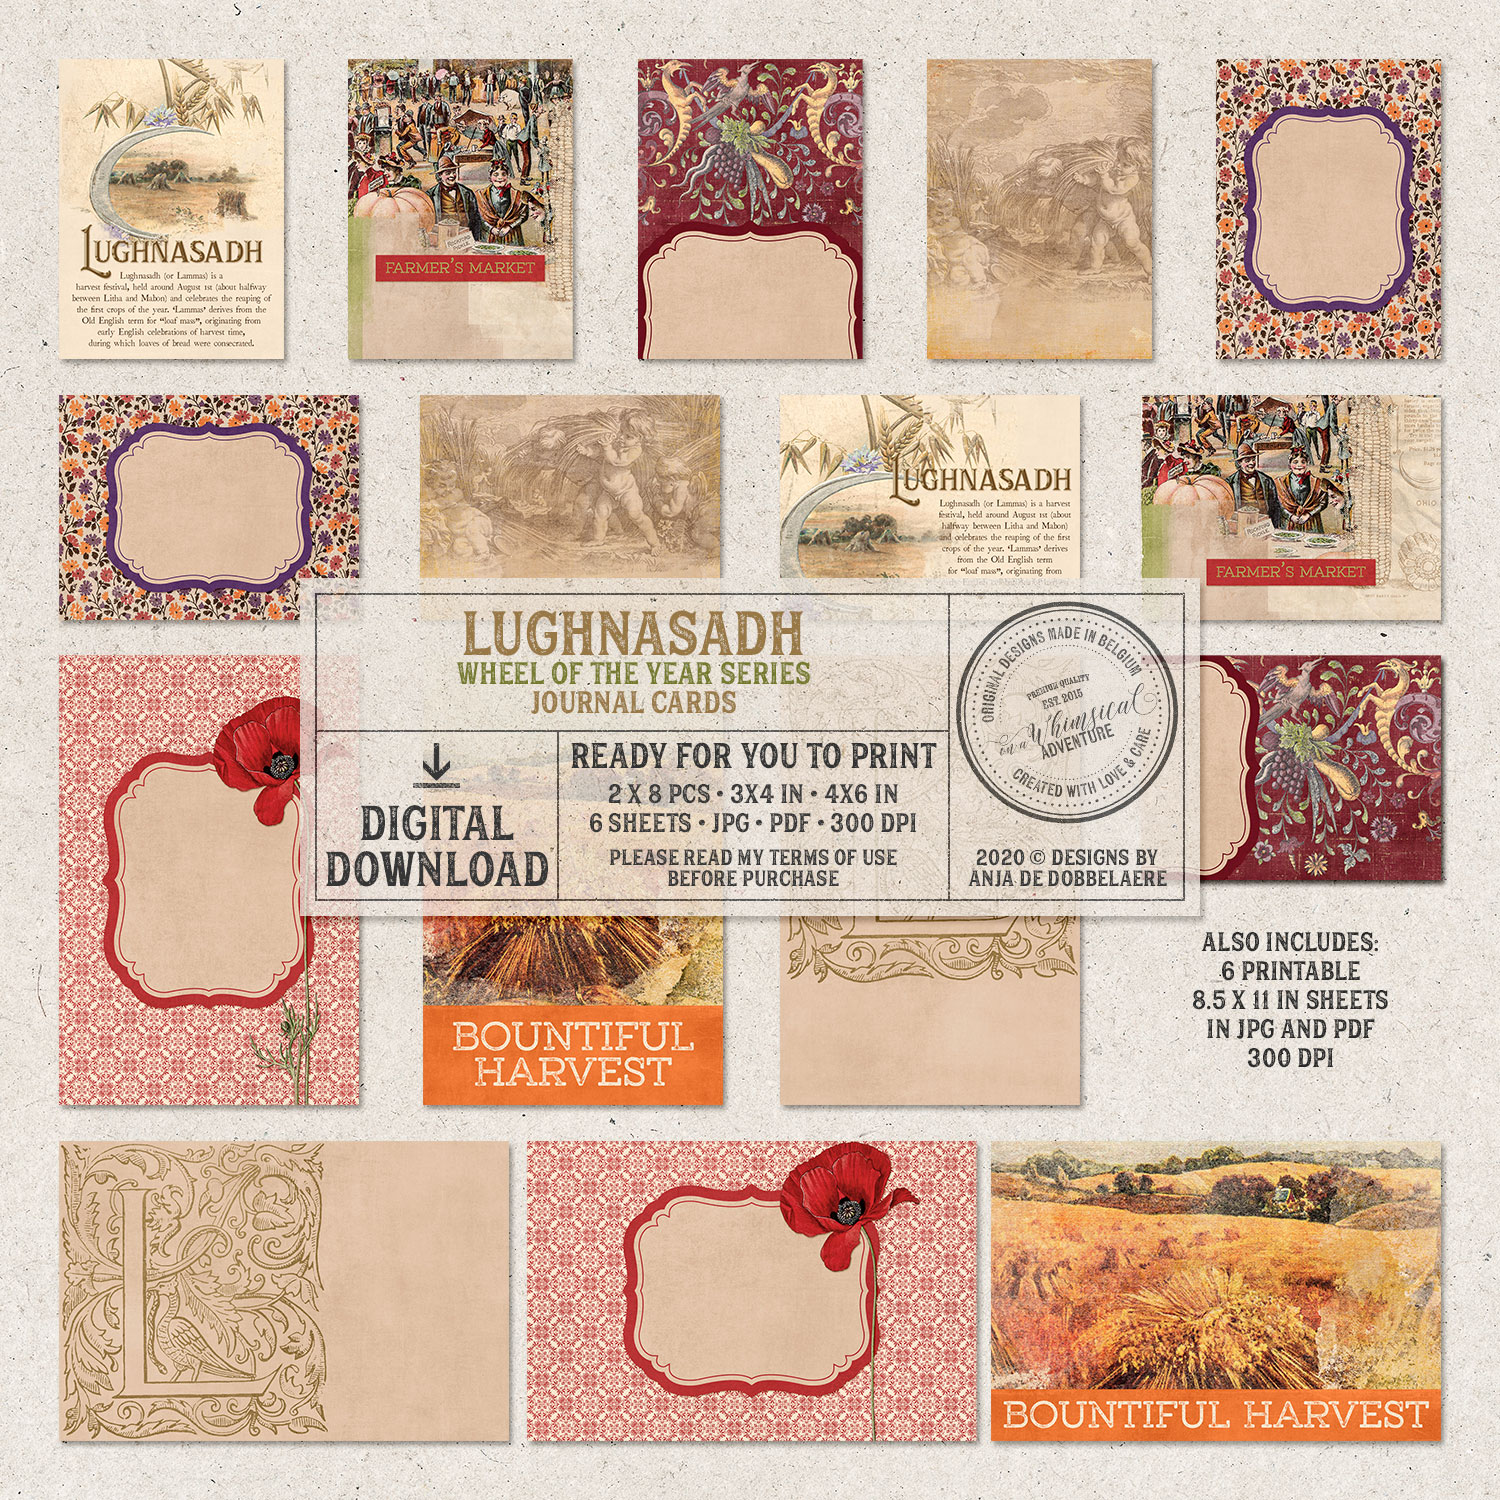 Wheel Of The Year Lughnasadh Journal Cards by On A Whimsical Adventure